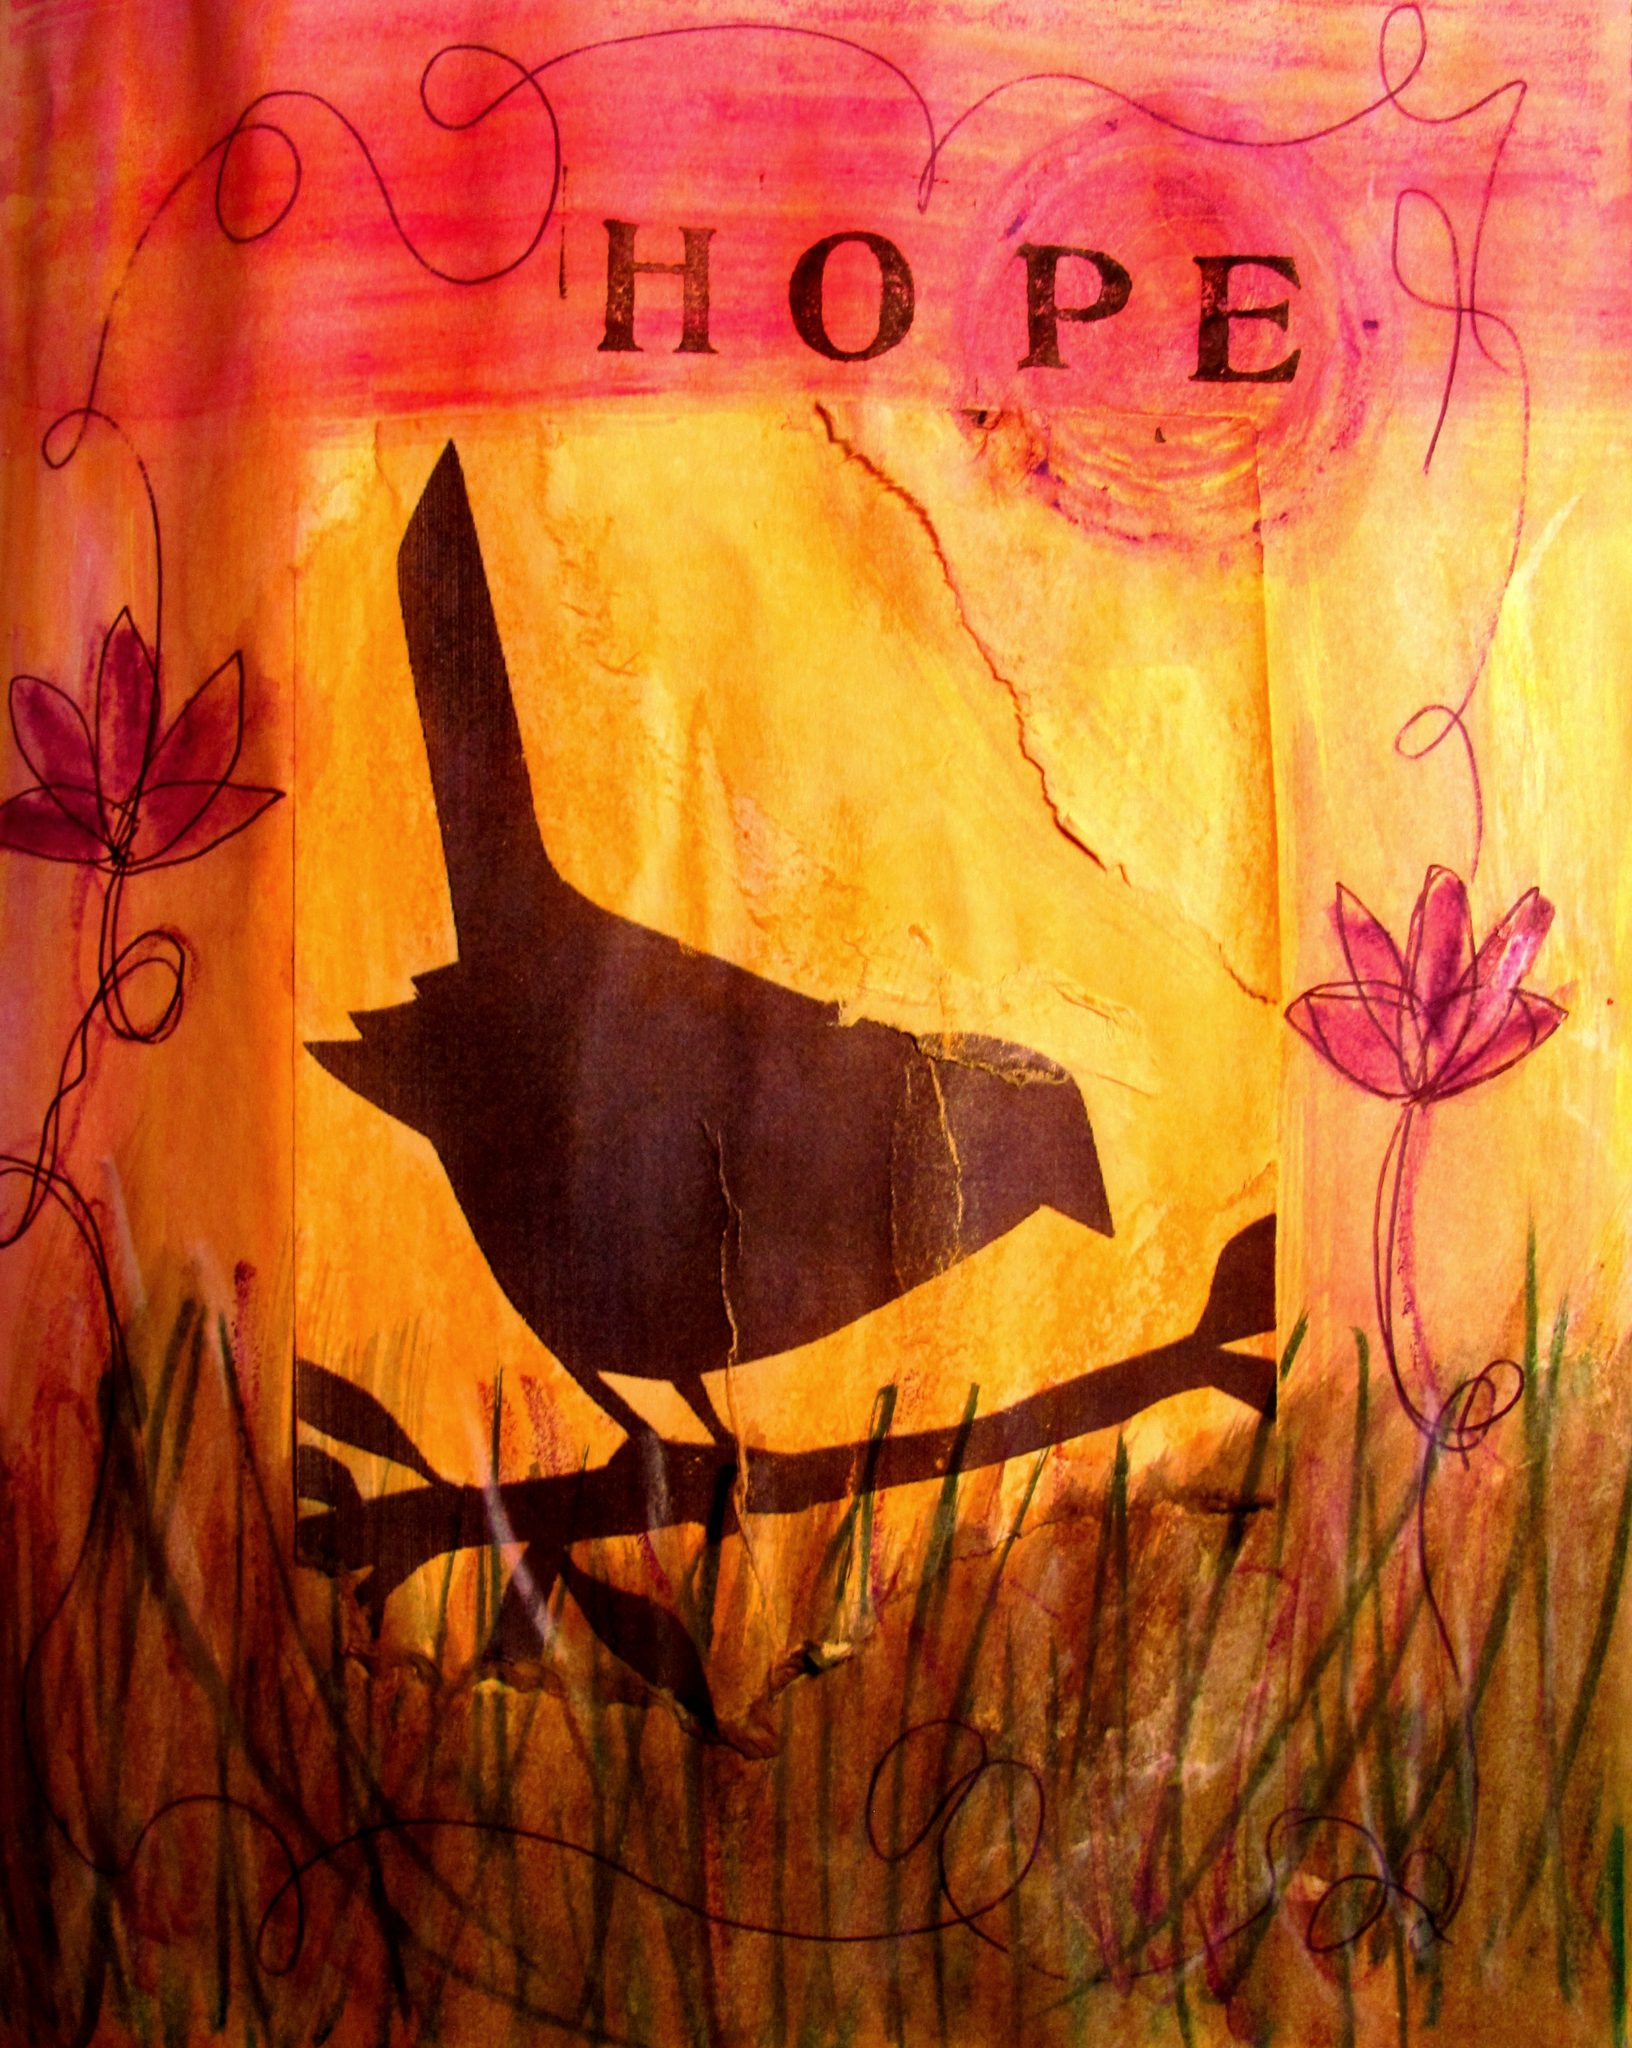 Hopeful, mixed media collage by Courtney Putnam